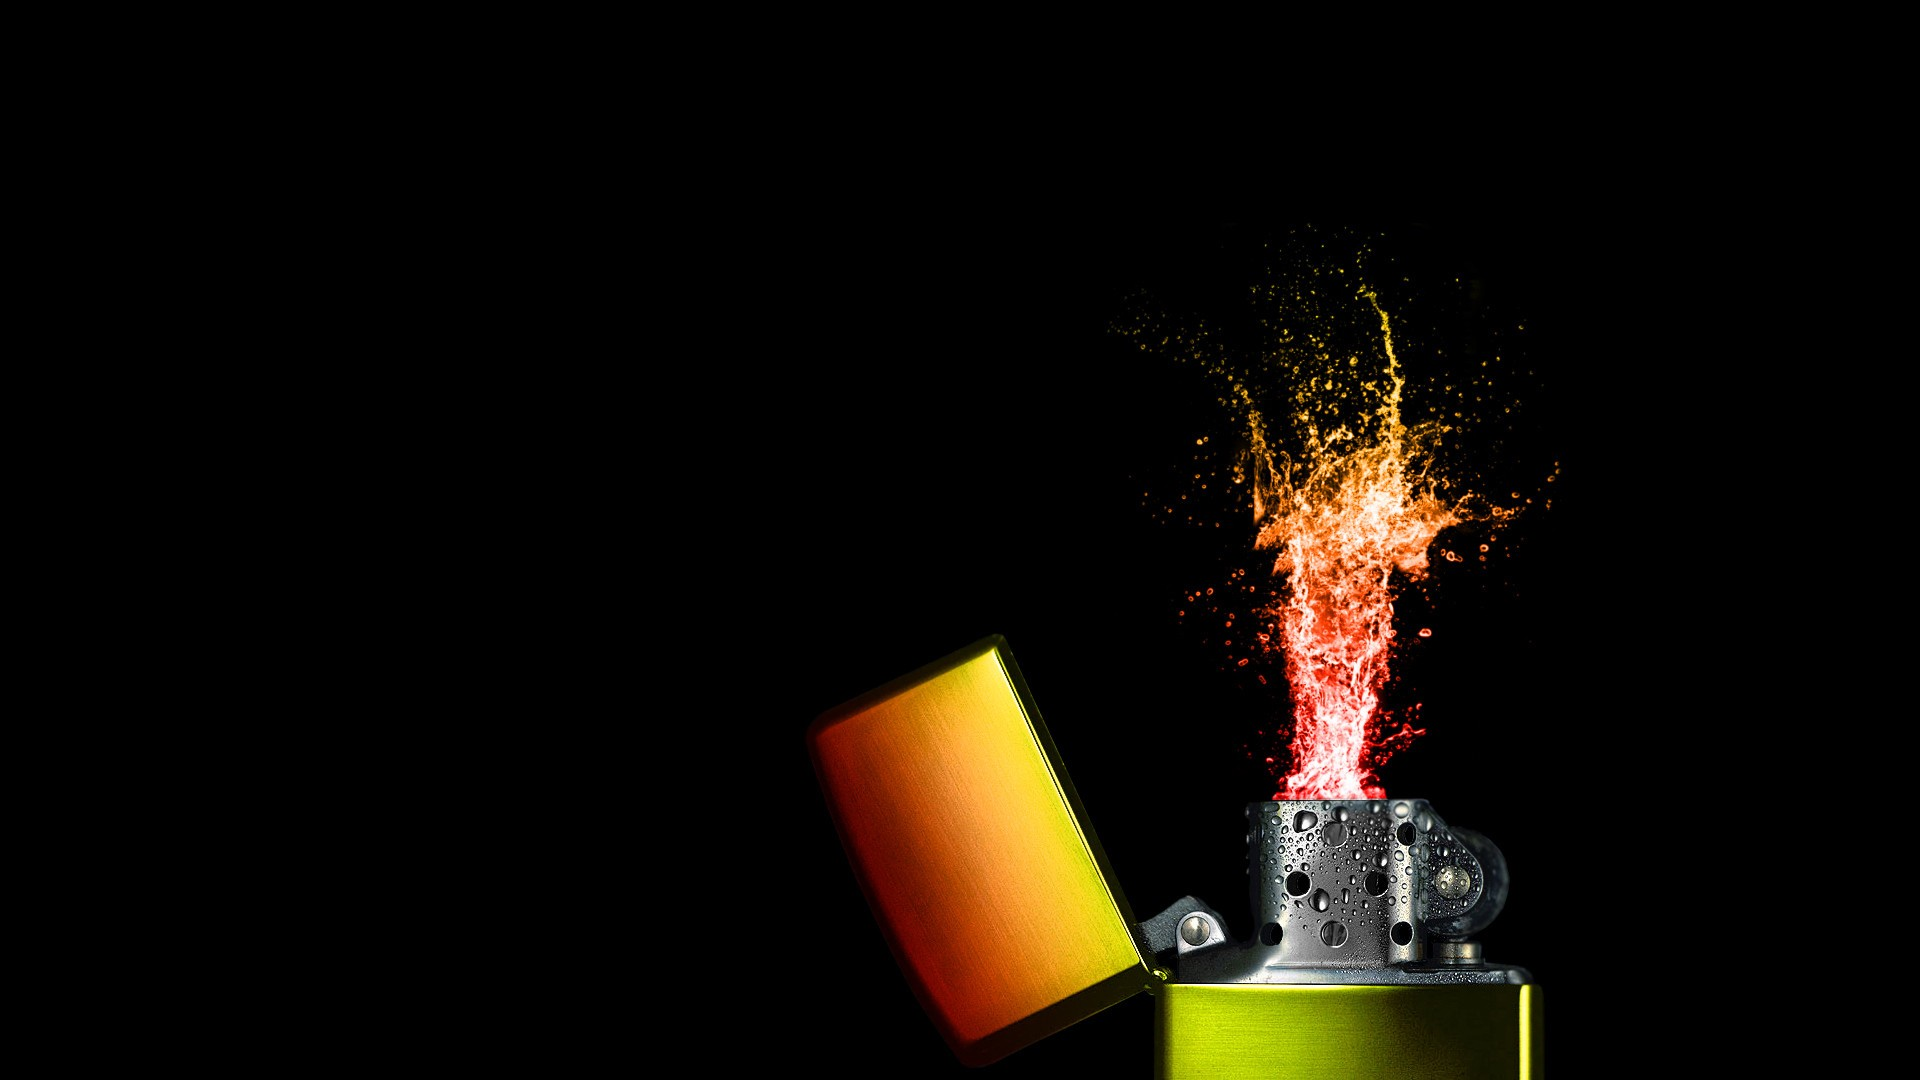 creative lighter wallpaper 51986 1920x1080 px